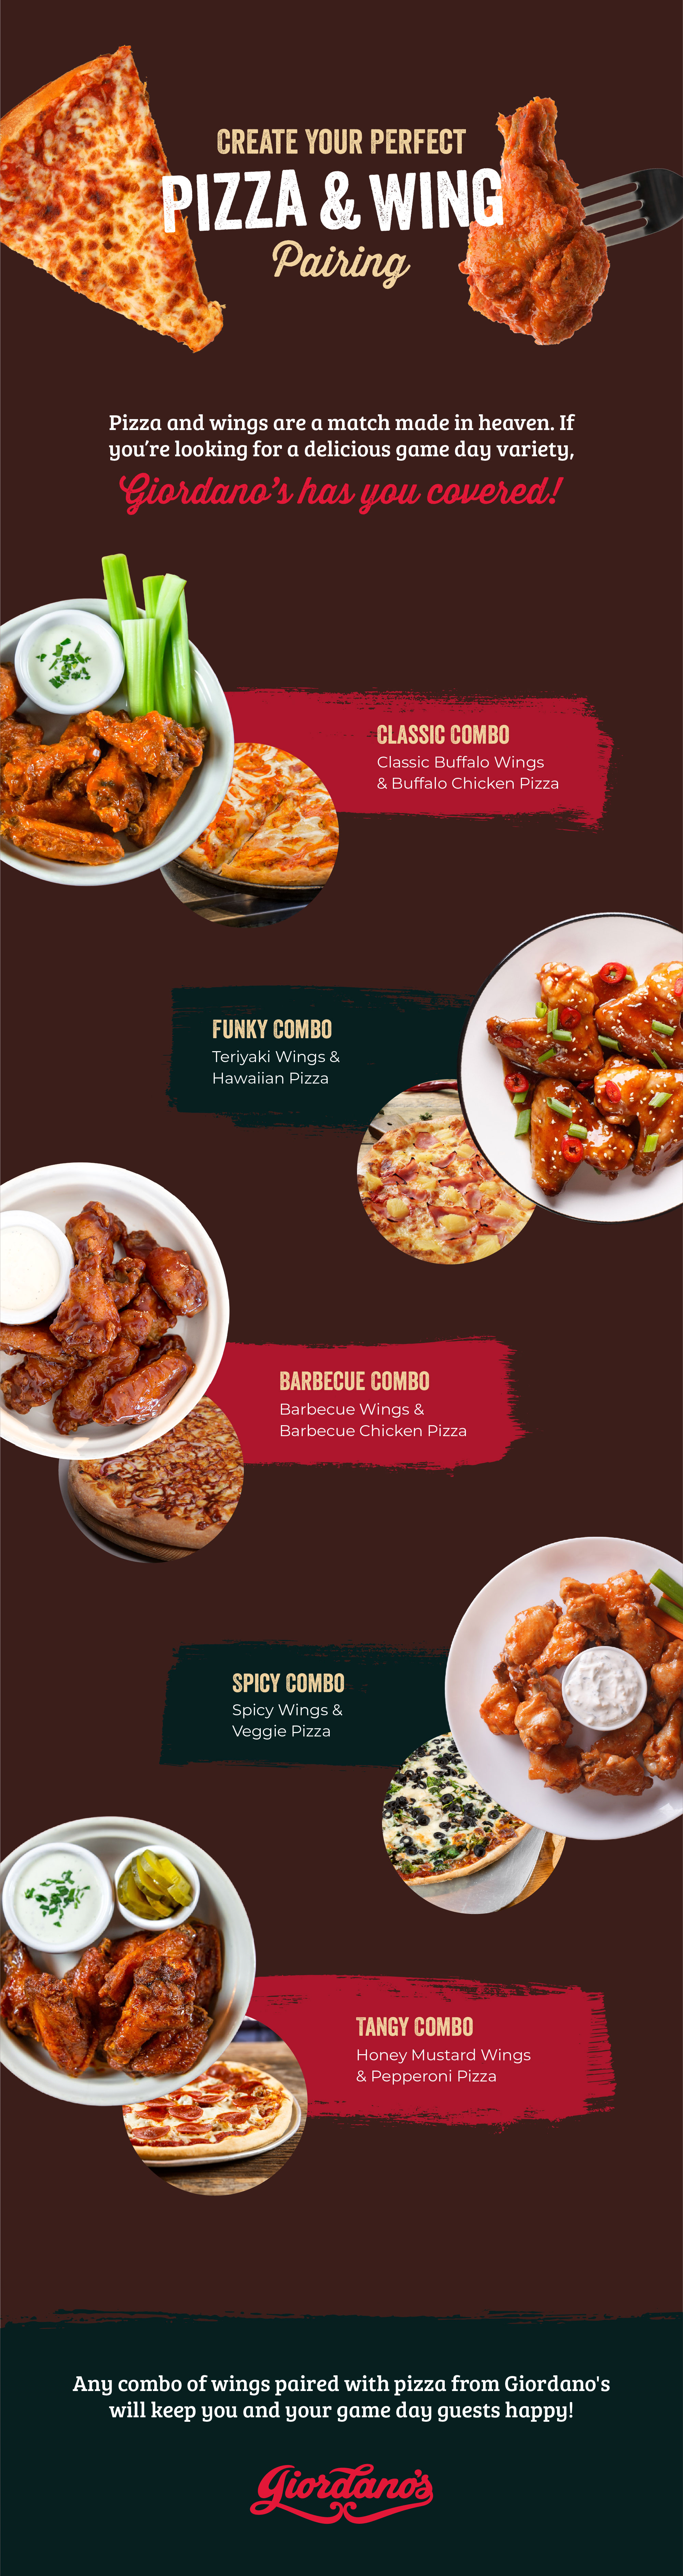 pizza and wing combos